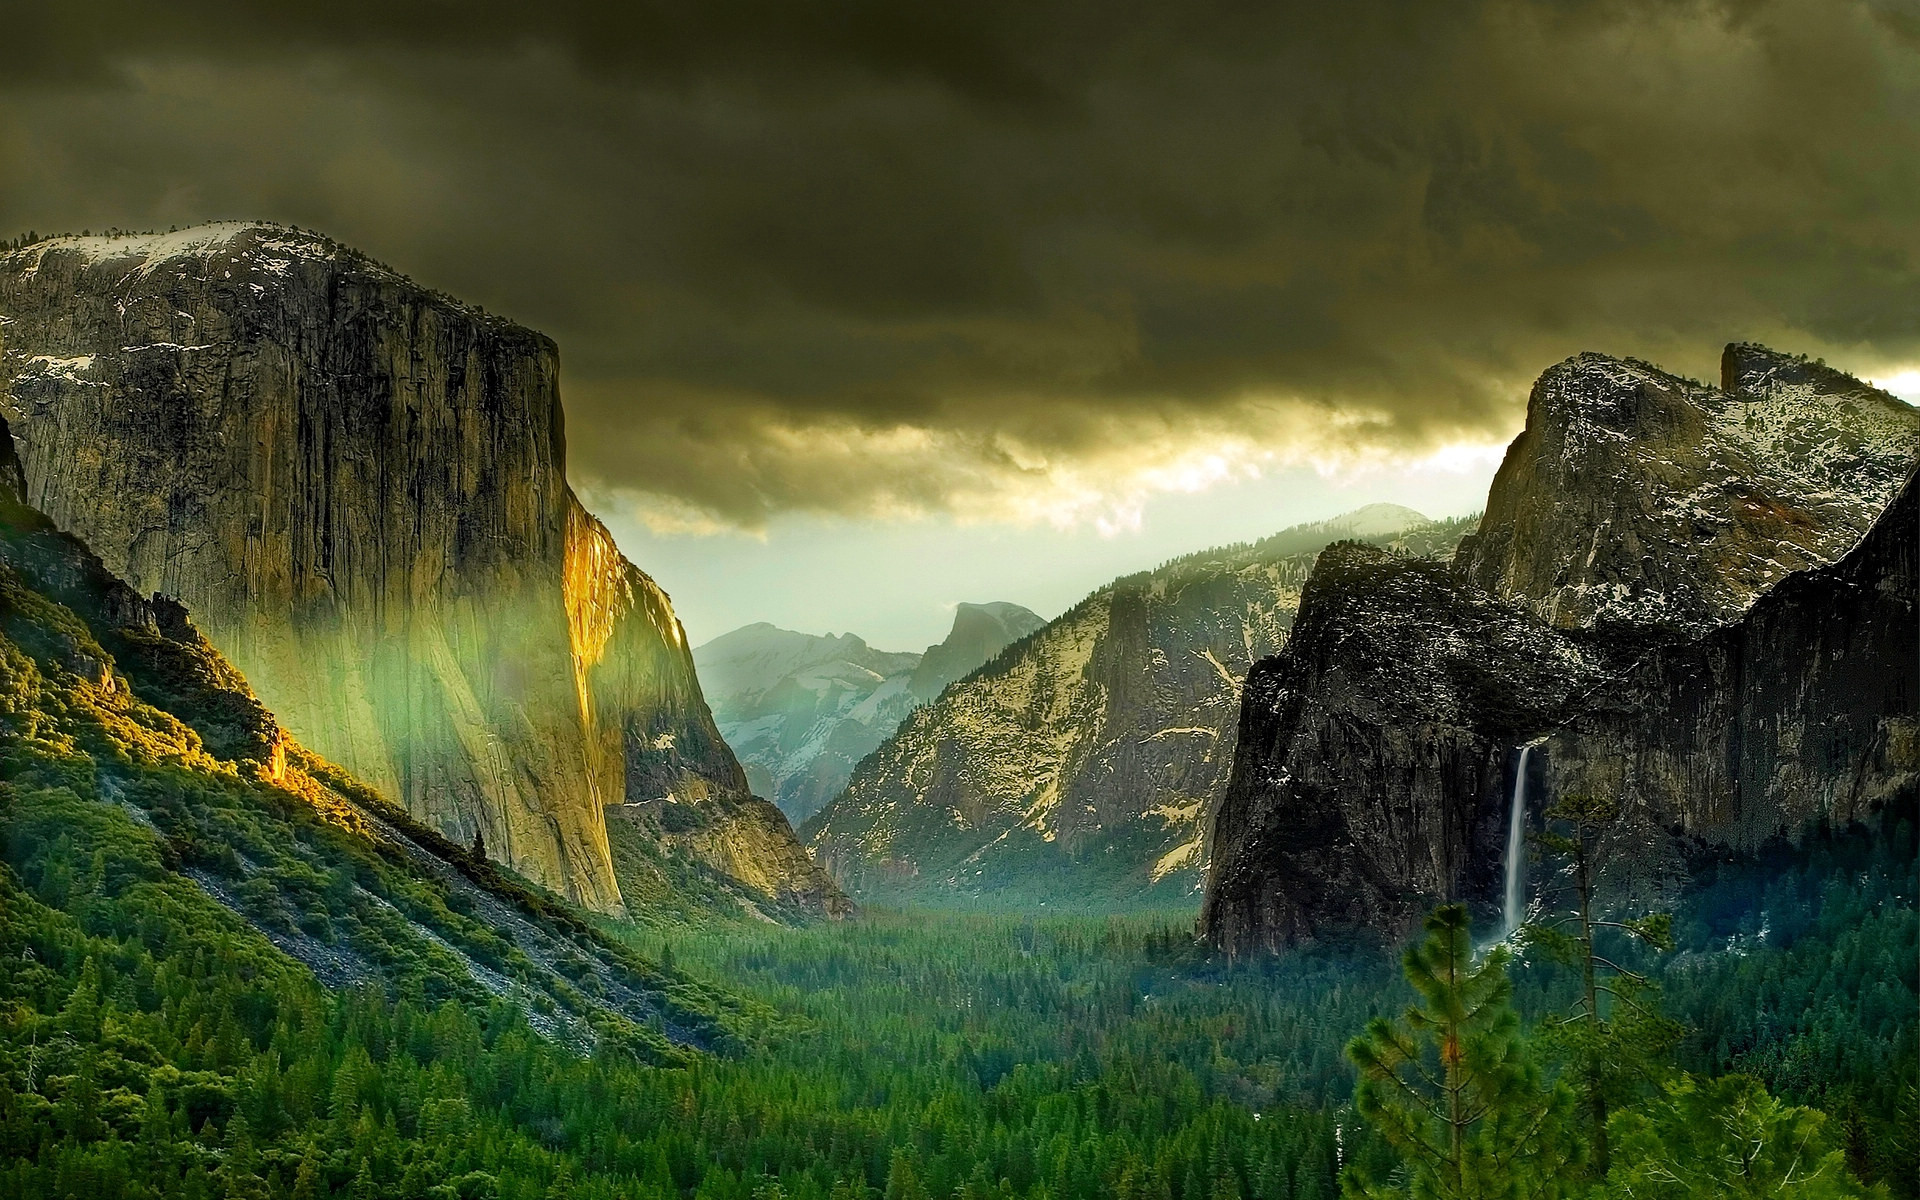 1920x1200 Yosemite National Park wallpaper #4669 | Download Wallpaper | Pinterest |  Yosemite national park, Apple mac and Wallpaper